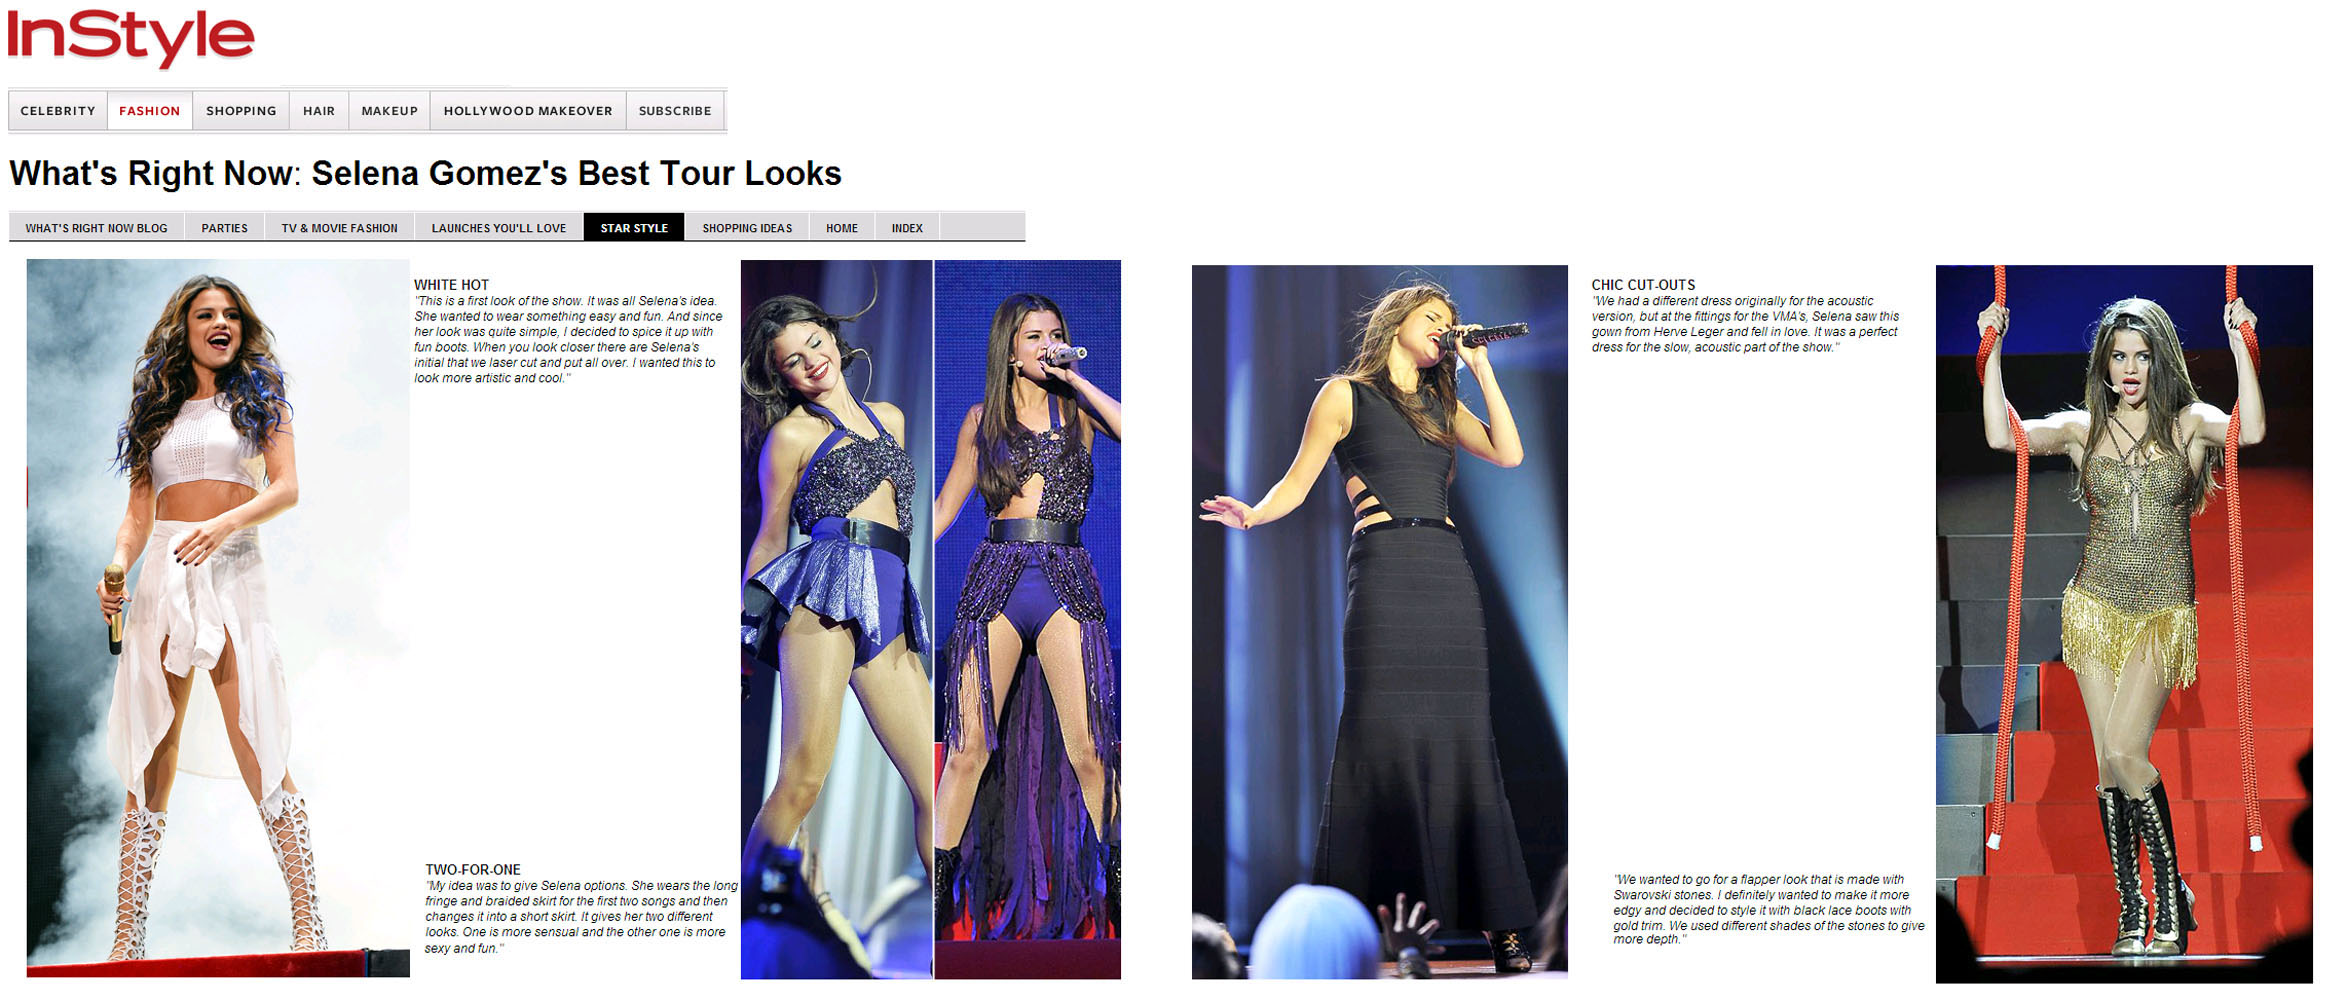 SG - InStyle - Tour Looks.jpg